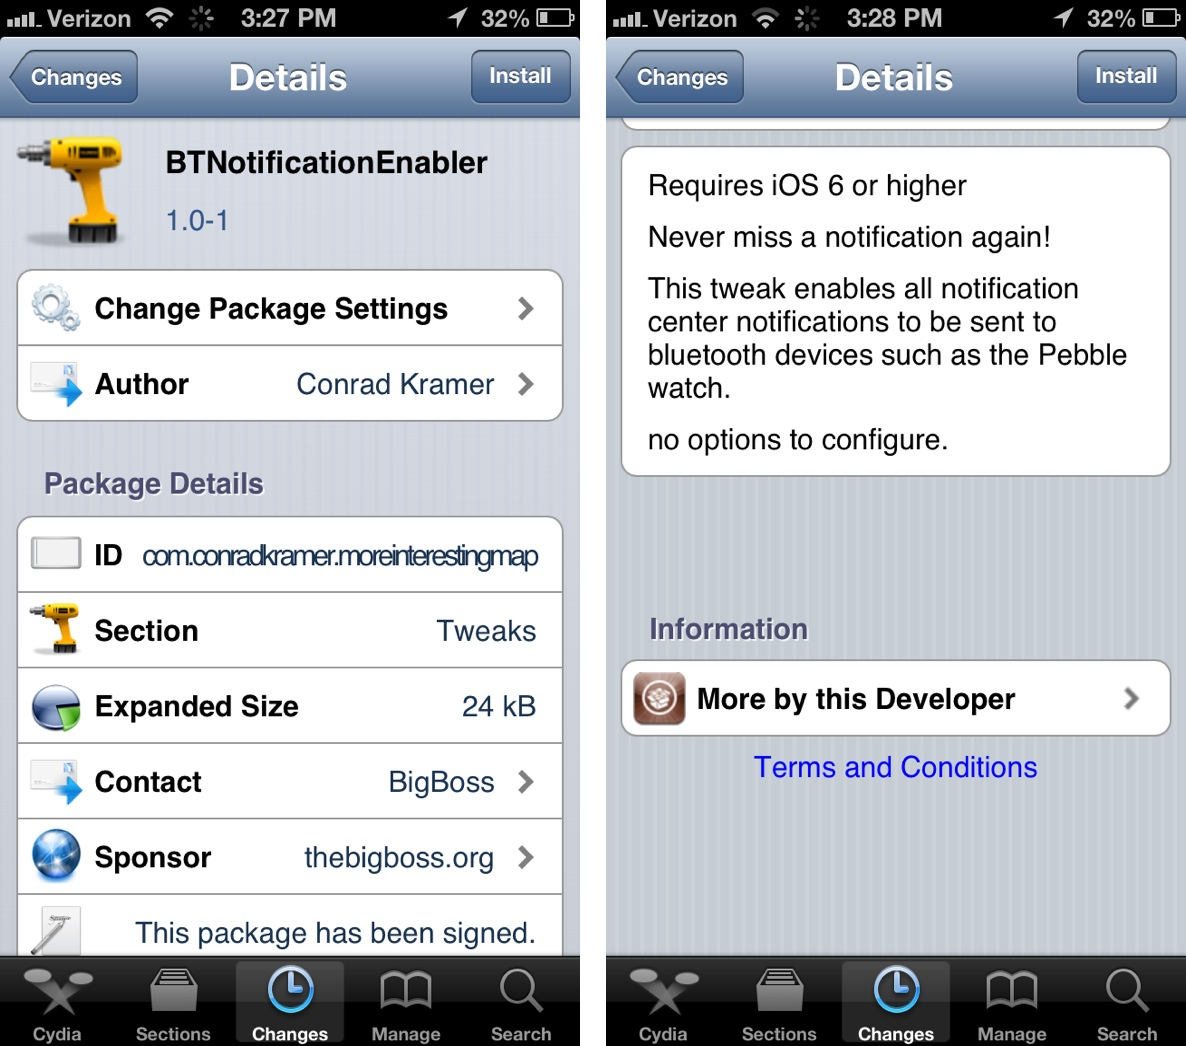 New tweak allows all Notification Center notifications to be sent to